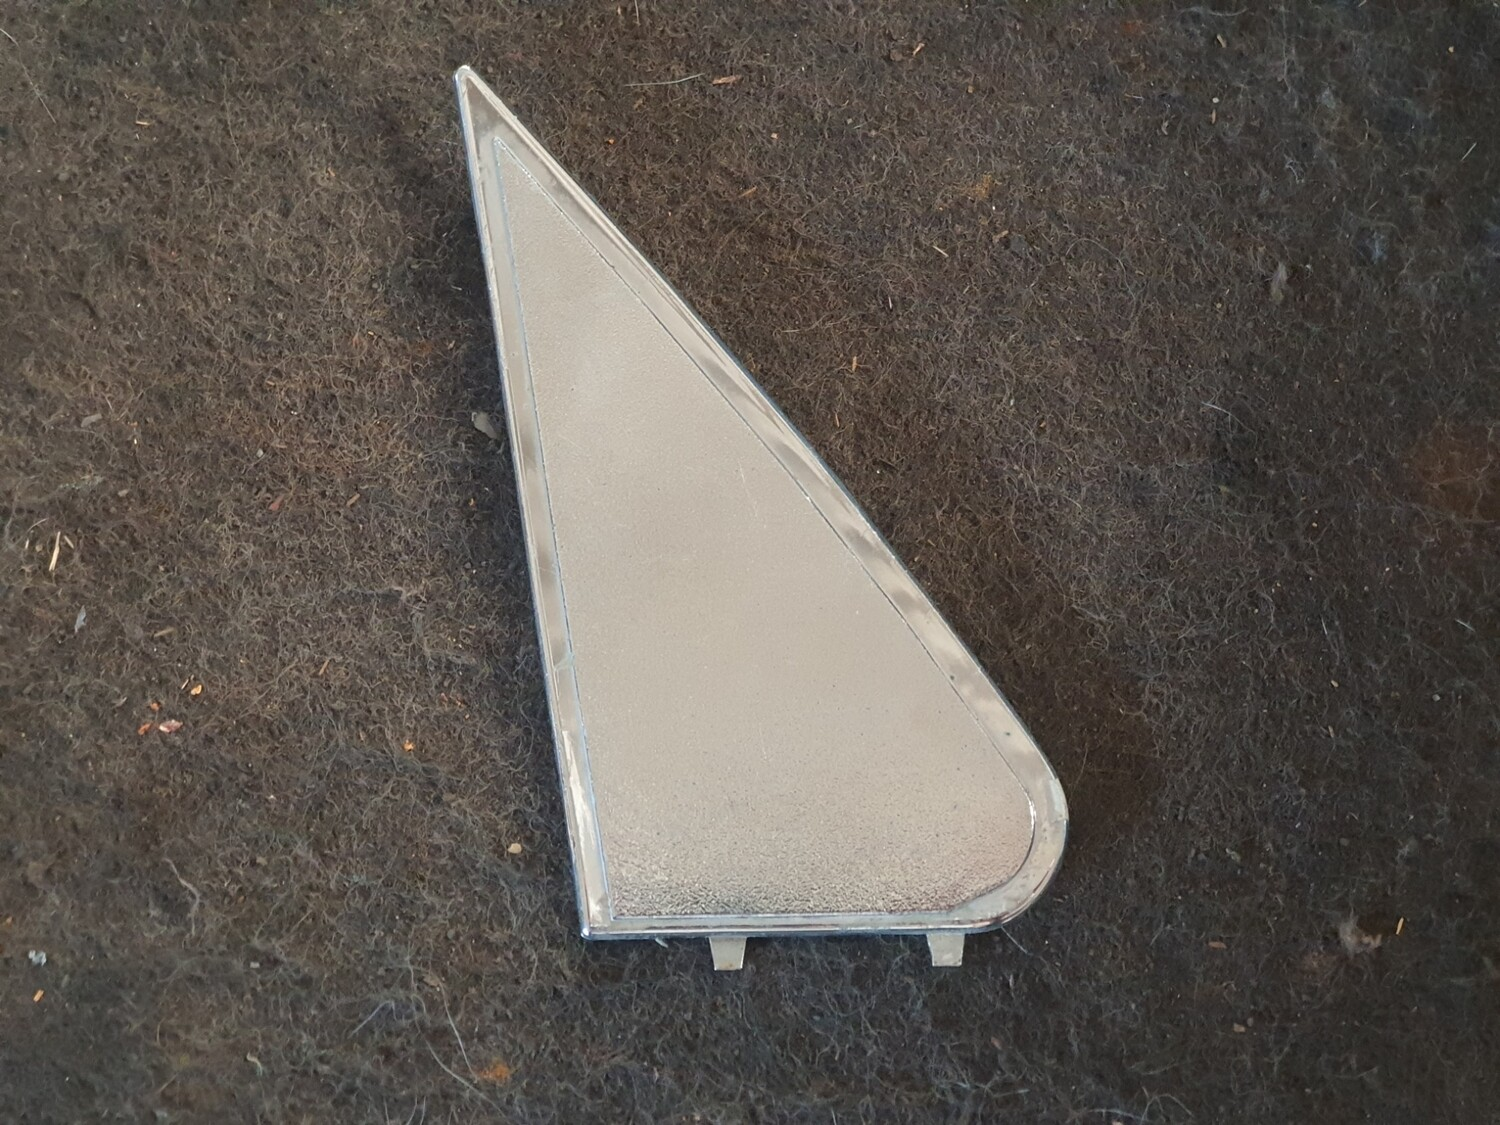 Mercedes-Benz Left Side Mirror Cover Trim (W123)